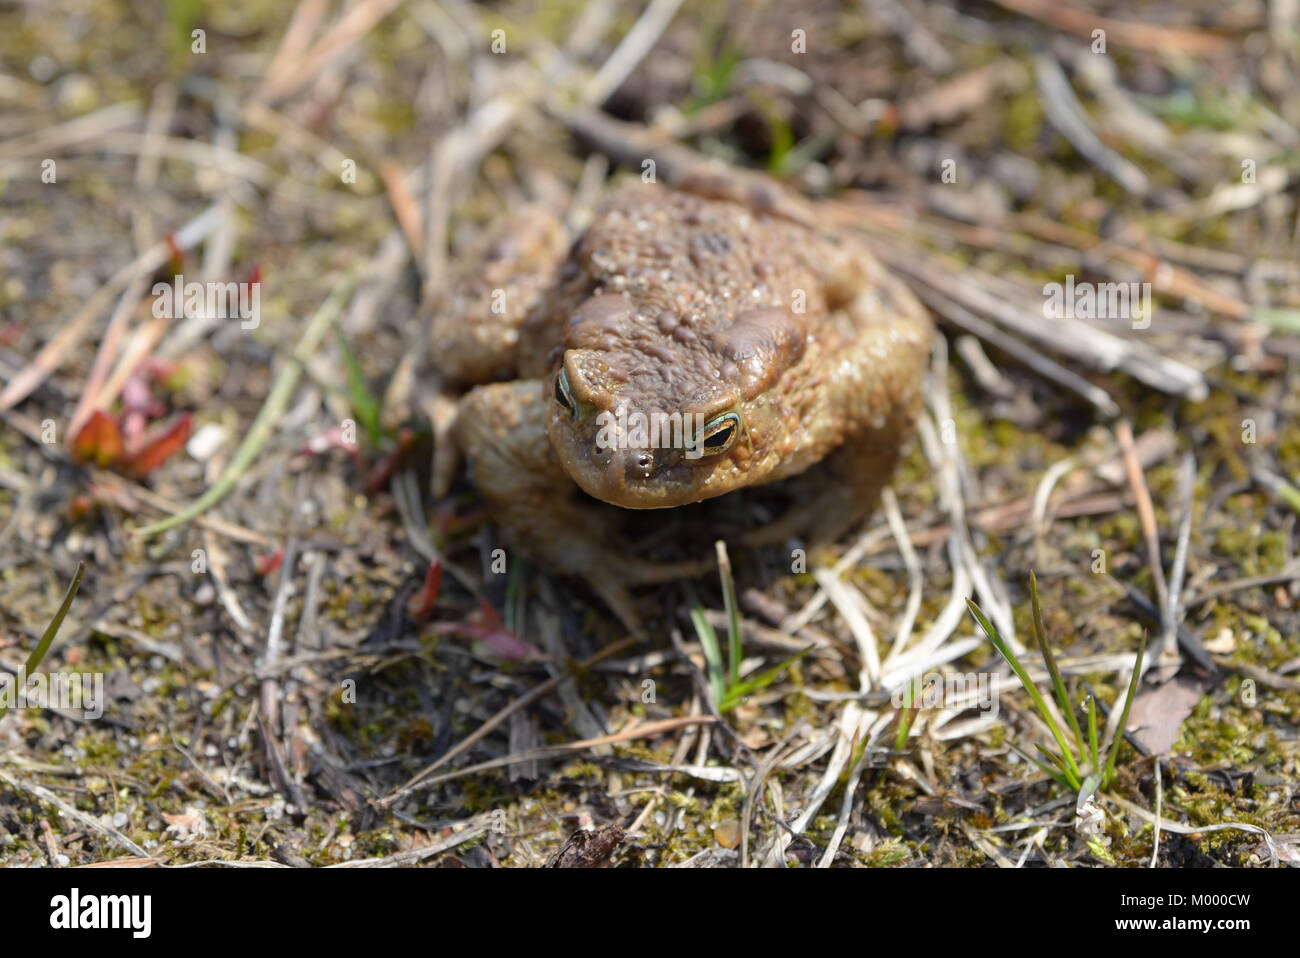 Toad sitting on the ground - Stock Image